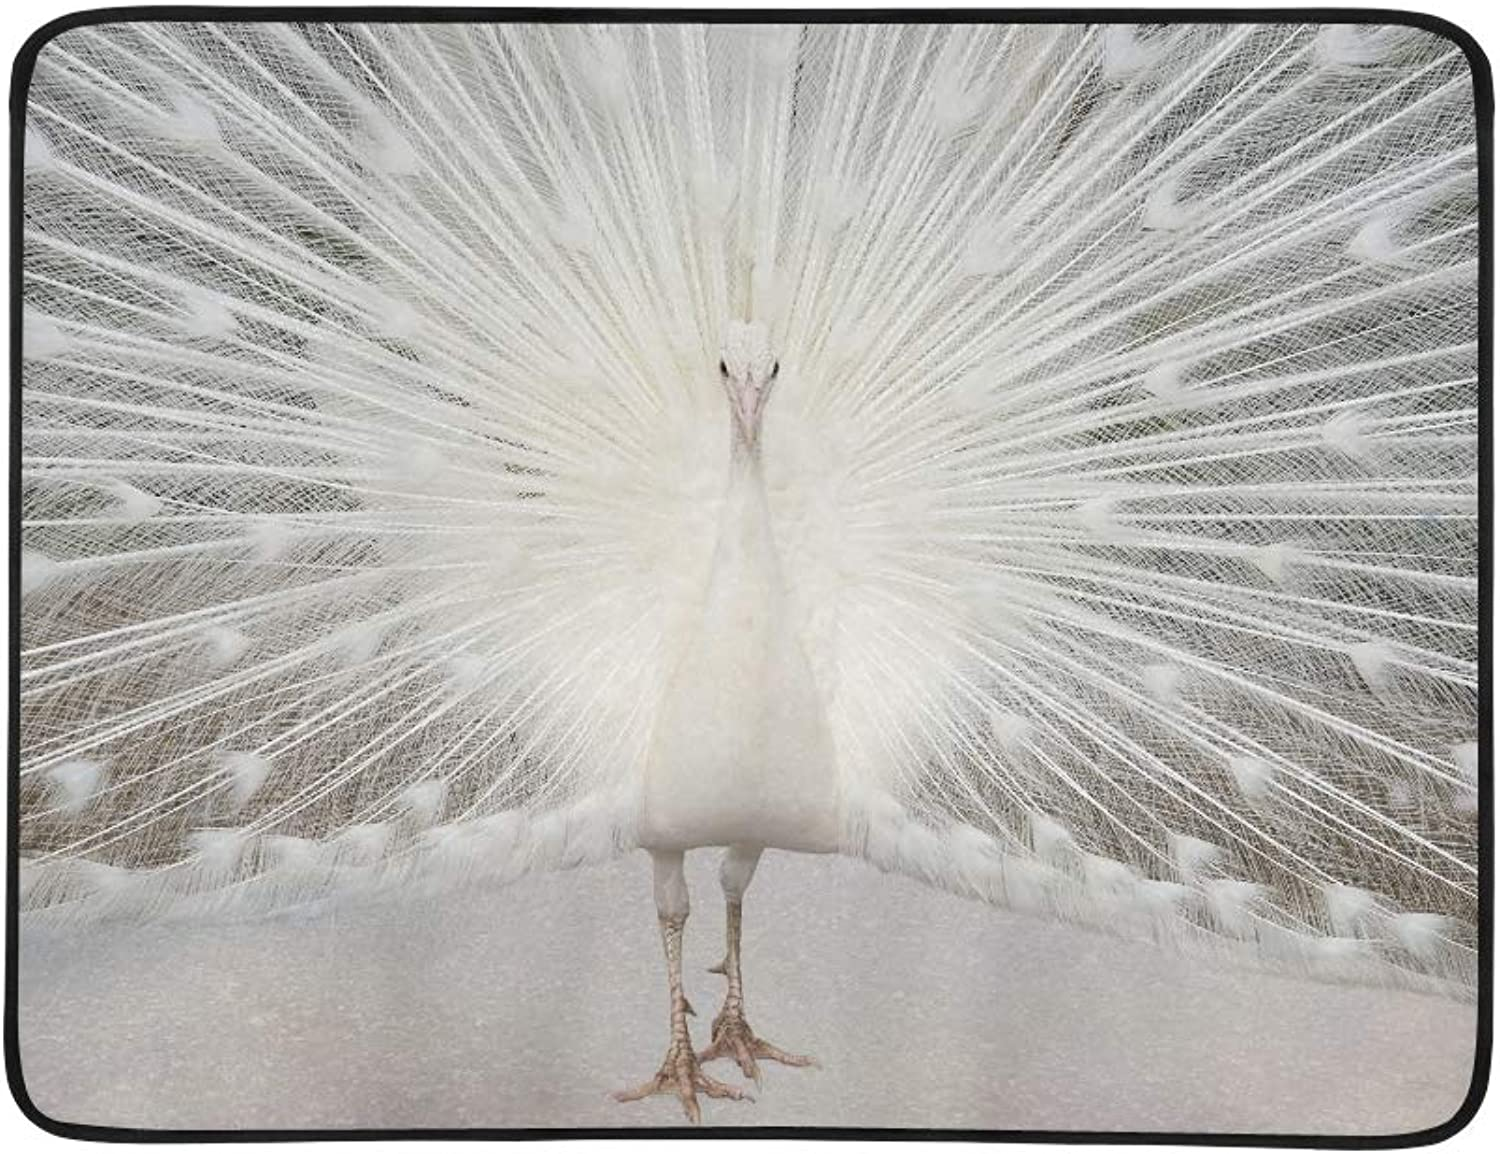 White Albino Peacock with Tail Feathers On Display Pattern Portable and Foldable Blanket Mat 60x78 Inch Handy Mat for Camping Picnic Beach Indoor Outdoor Travel